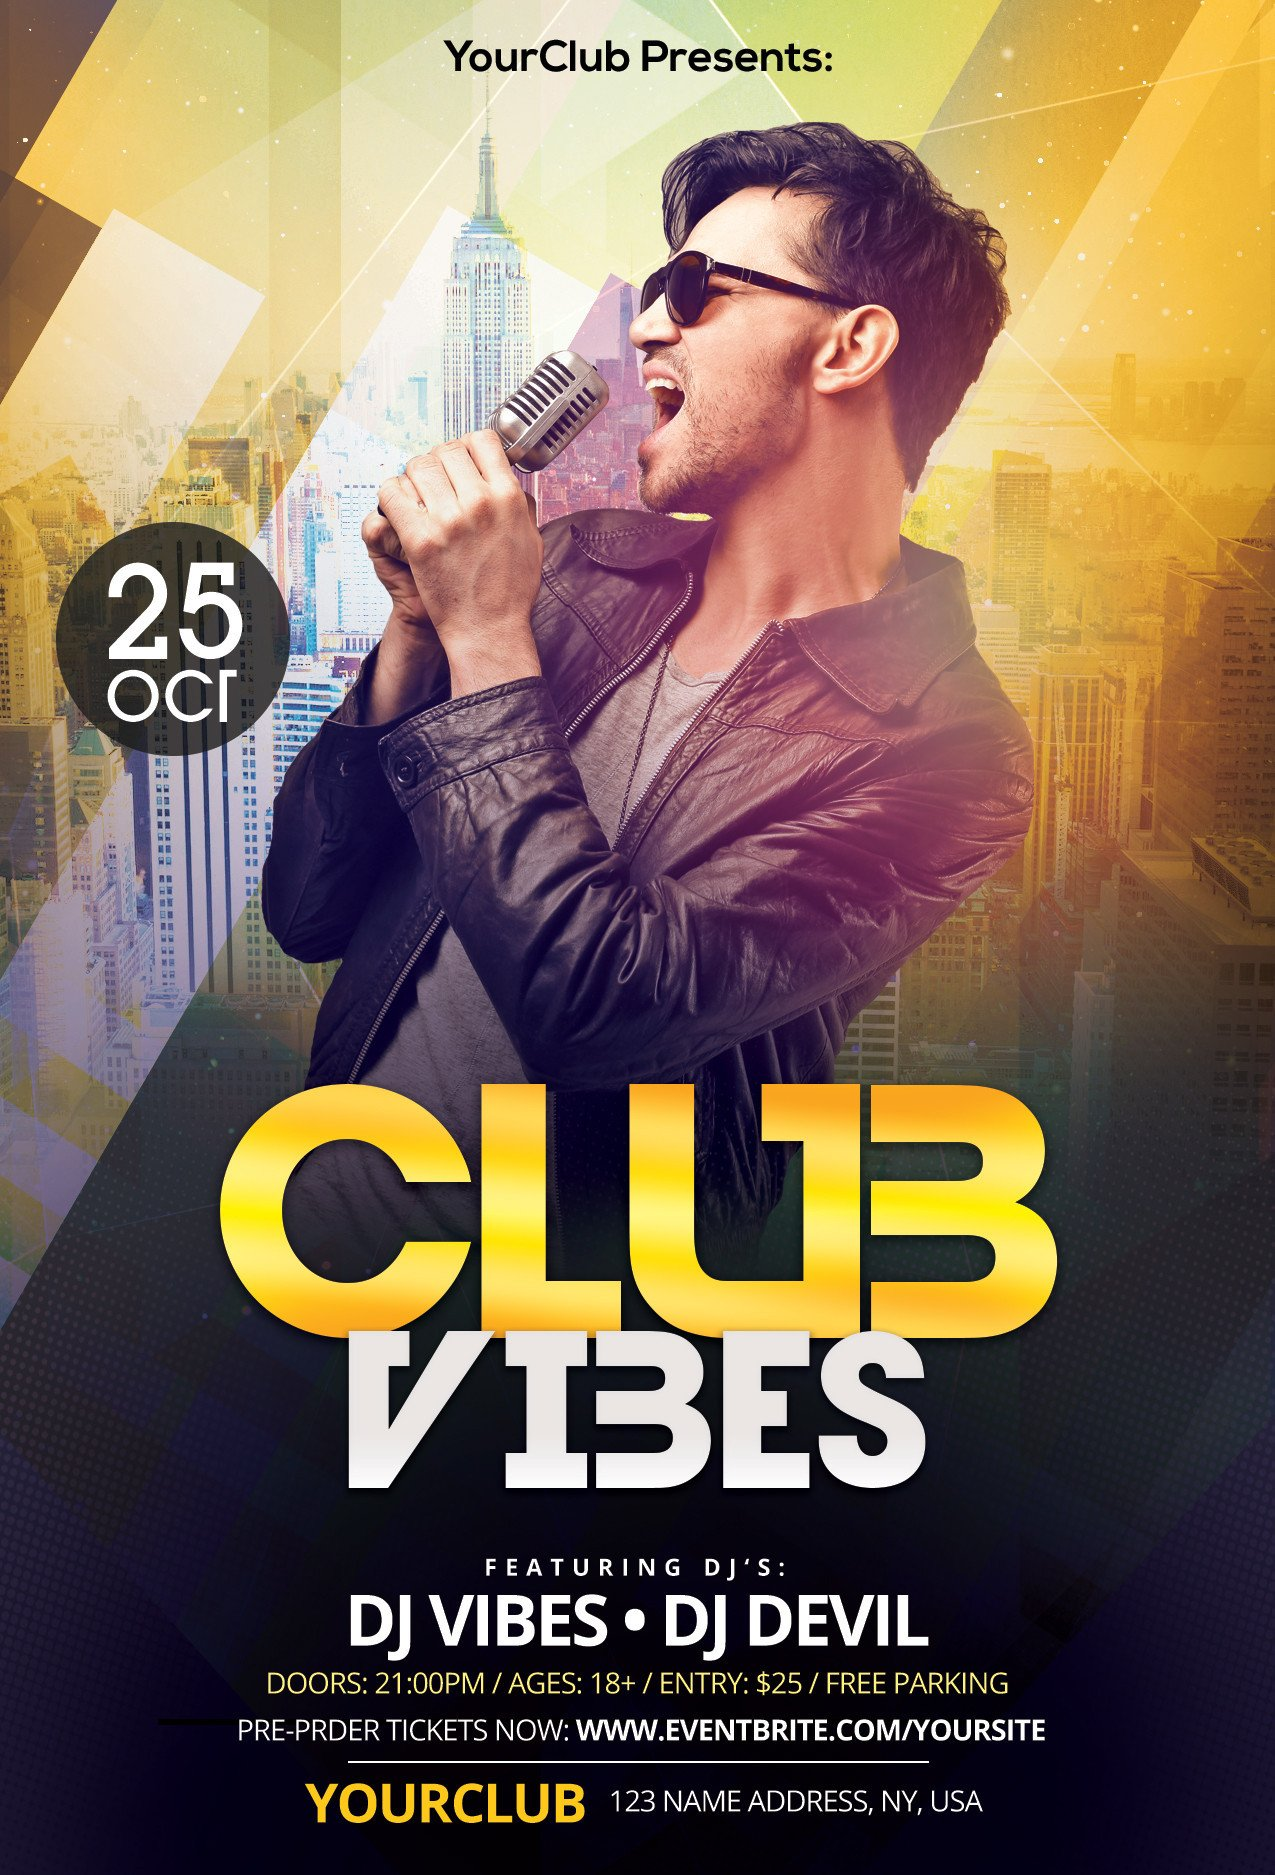 Free Photoshop Flyer Templates Club Vibes Download Free Psd Shop Flyer Template